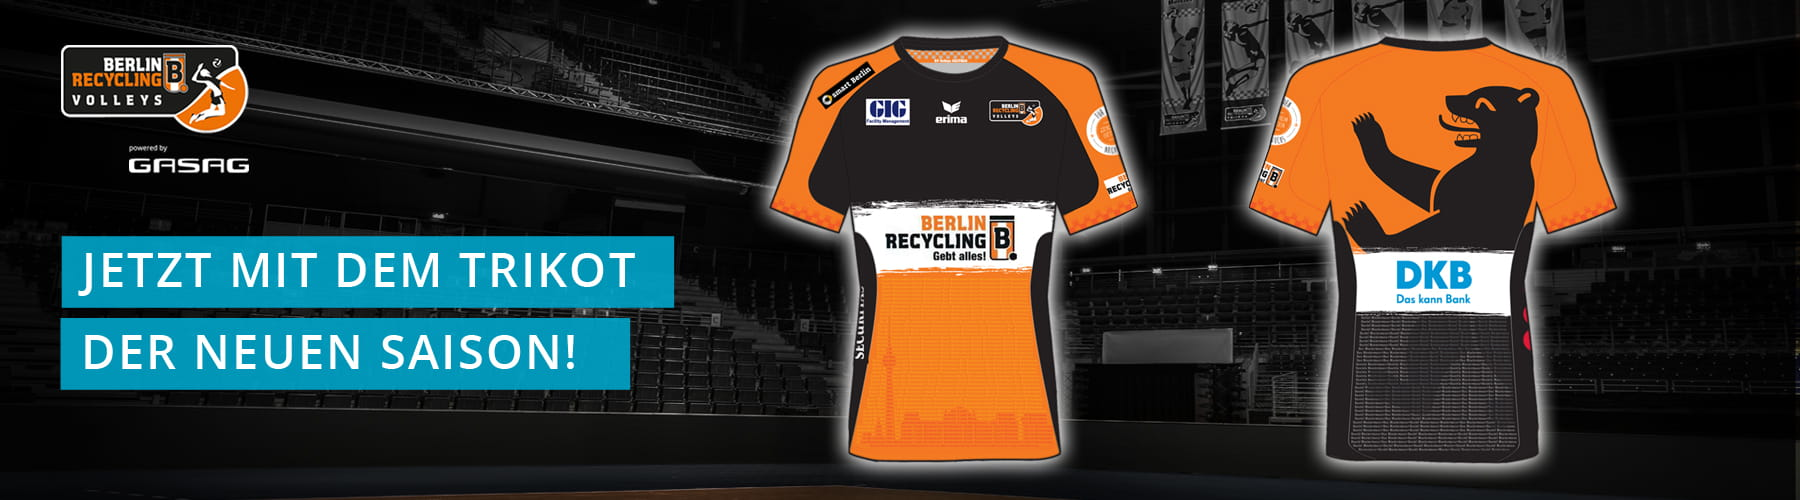 BR-Volleys-Neues-Trikot-2018